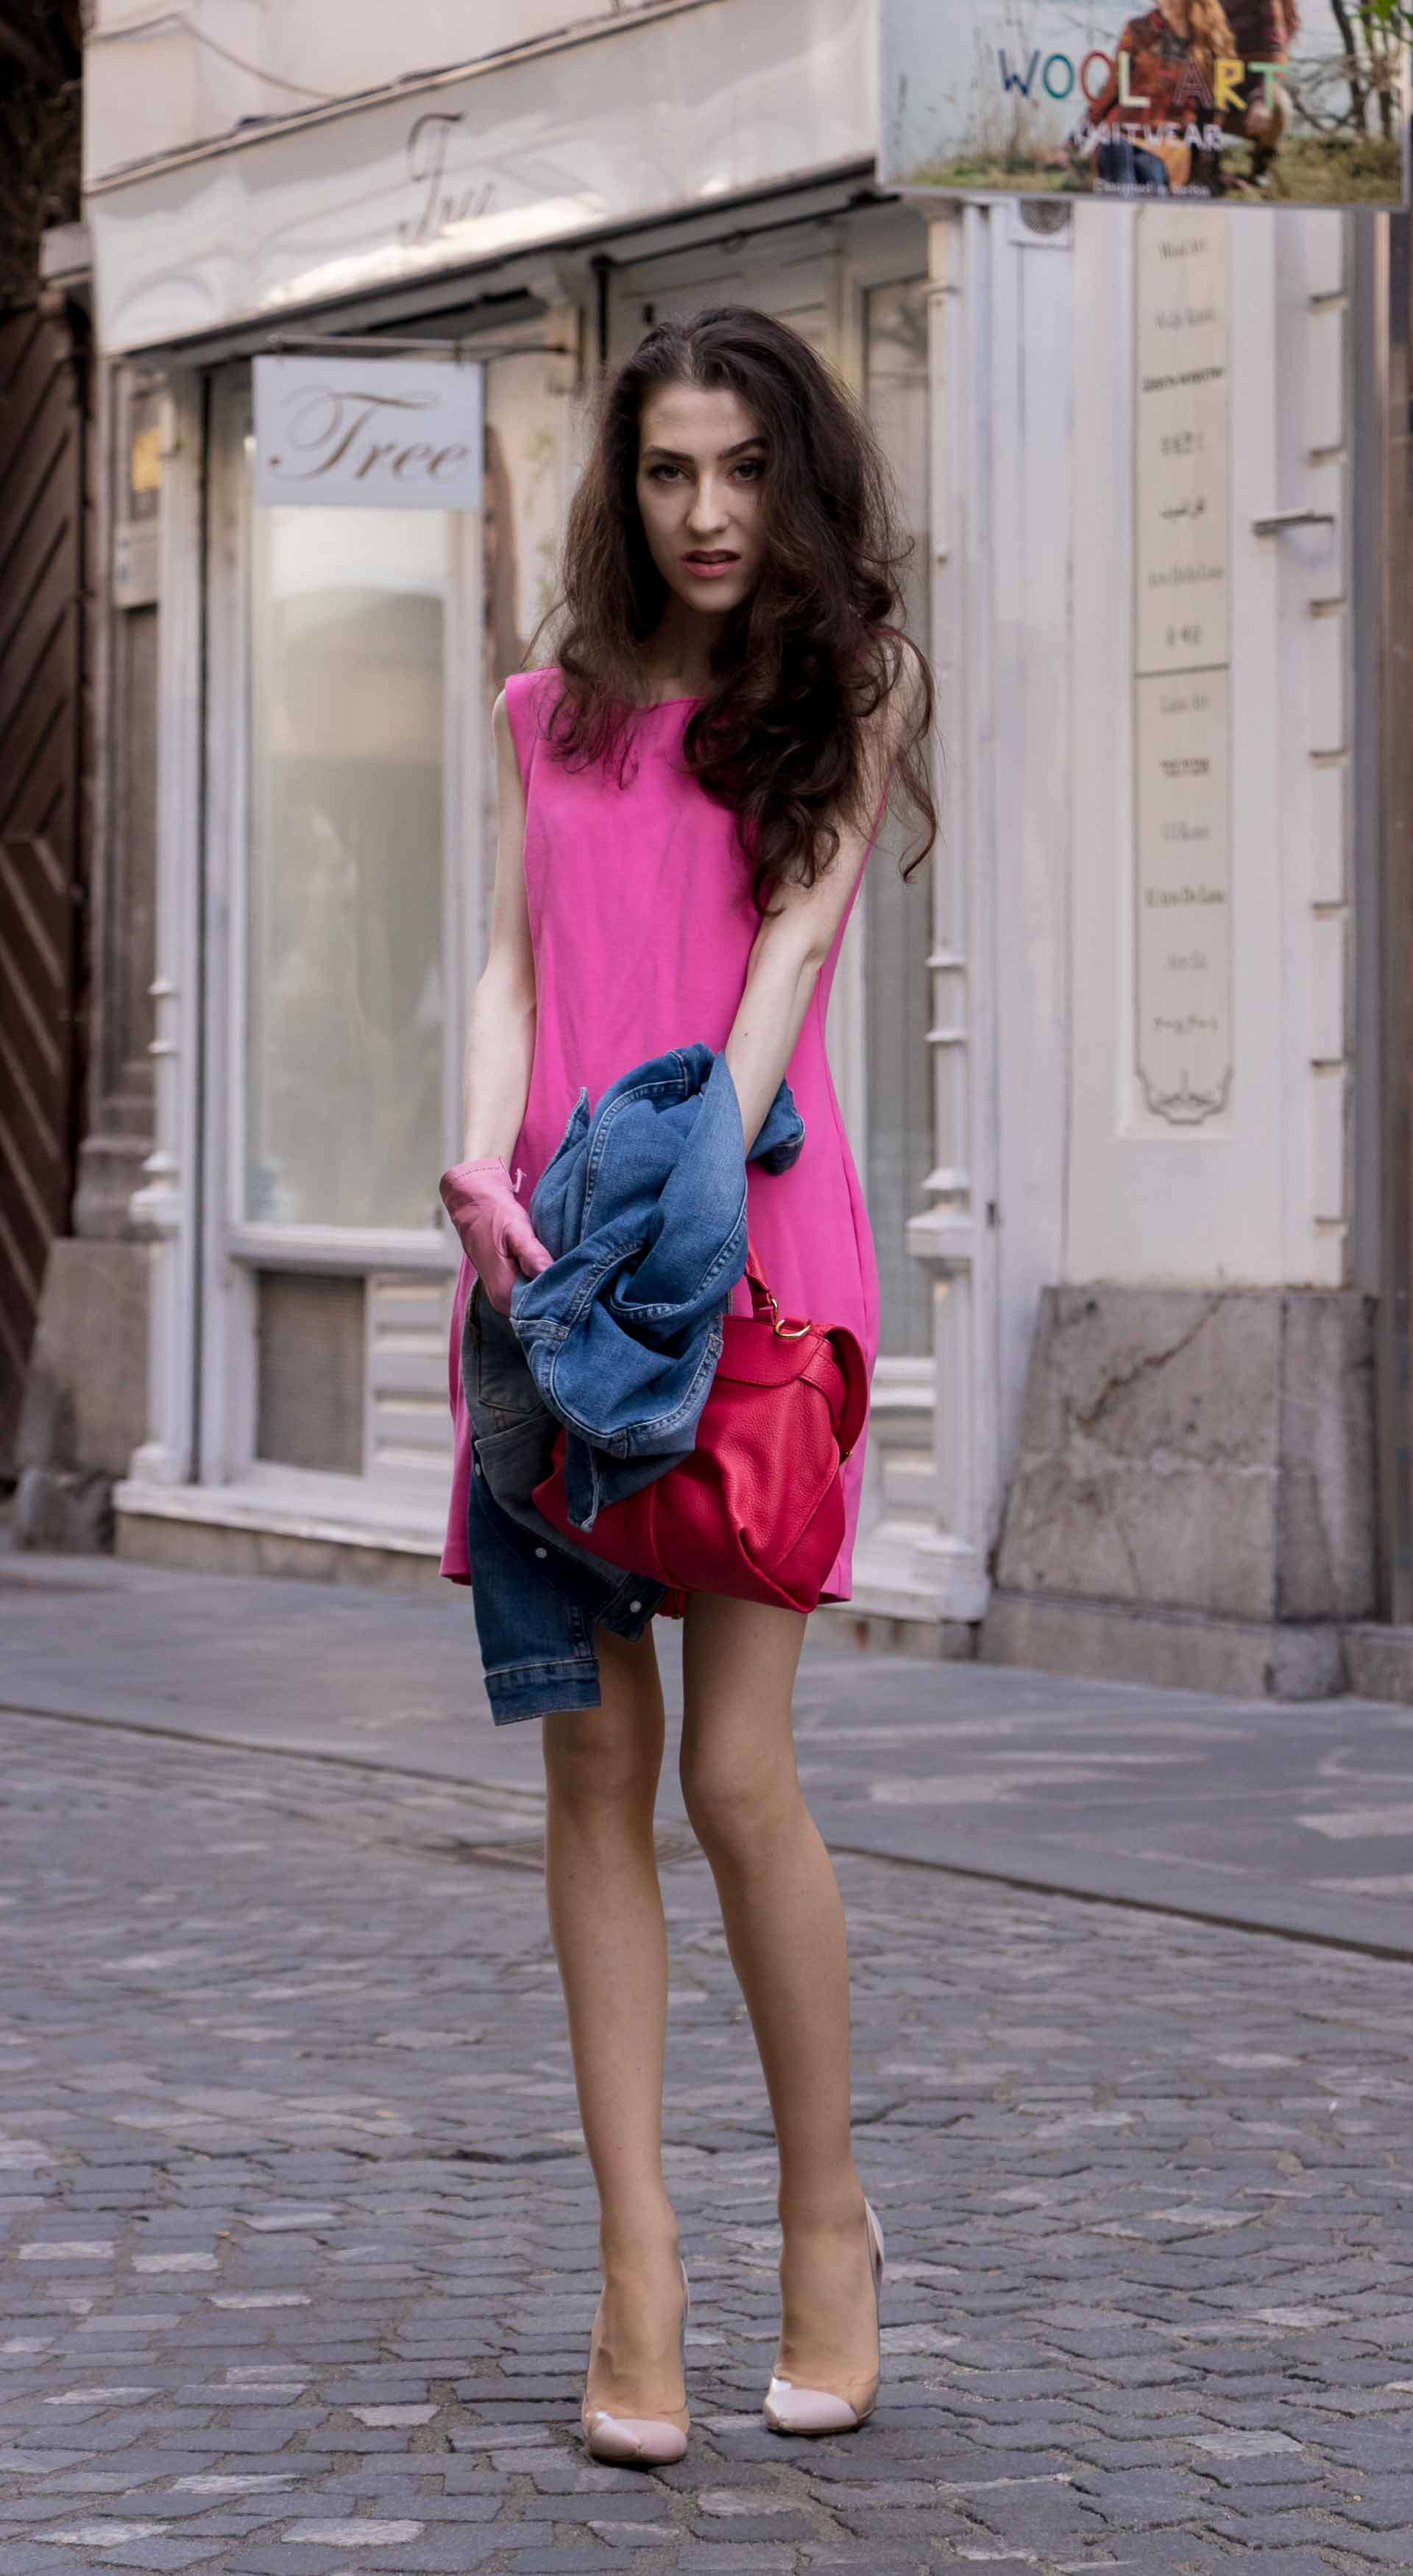 Veronika Lipar Fashion Blogger of Brunette from Wall Street wearing H&M denim jacket, pink summer dress, blush Gianvito Rossi plexi pumps, pink Forzieri gloves, See by Chloé pink top handle bag, Adam Selman x Le Specs white cat eye Lolita sunglasses while standing on the street in Ljubljana